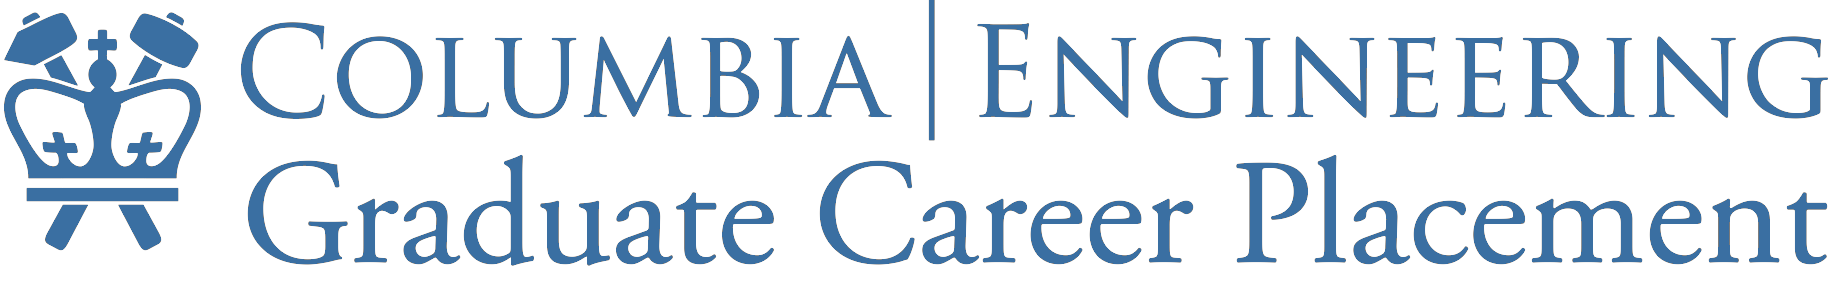 Engineering Careers logo